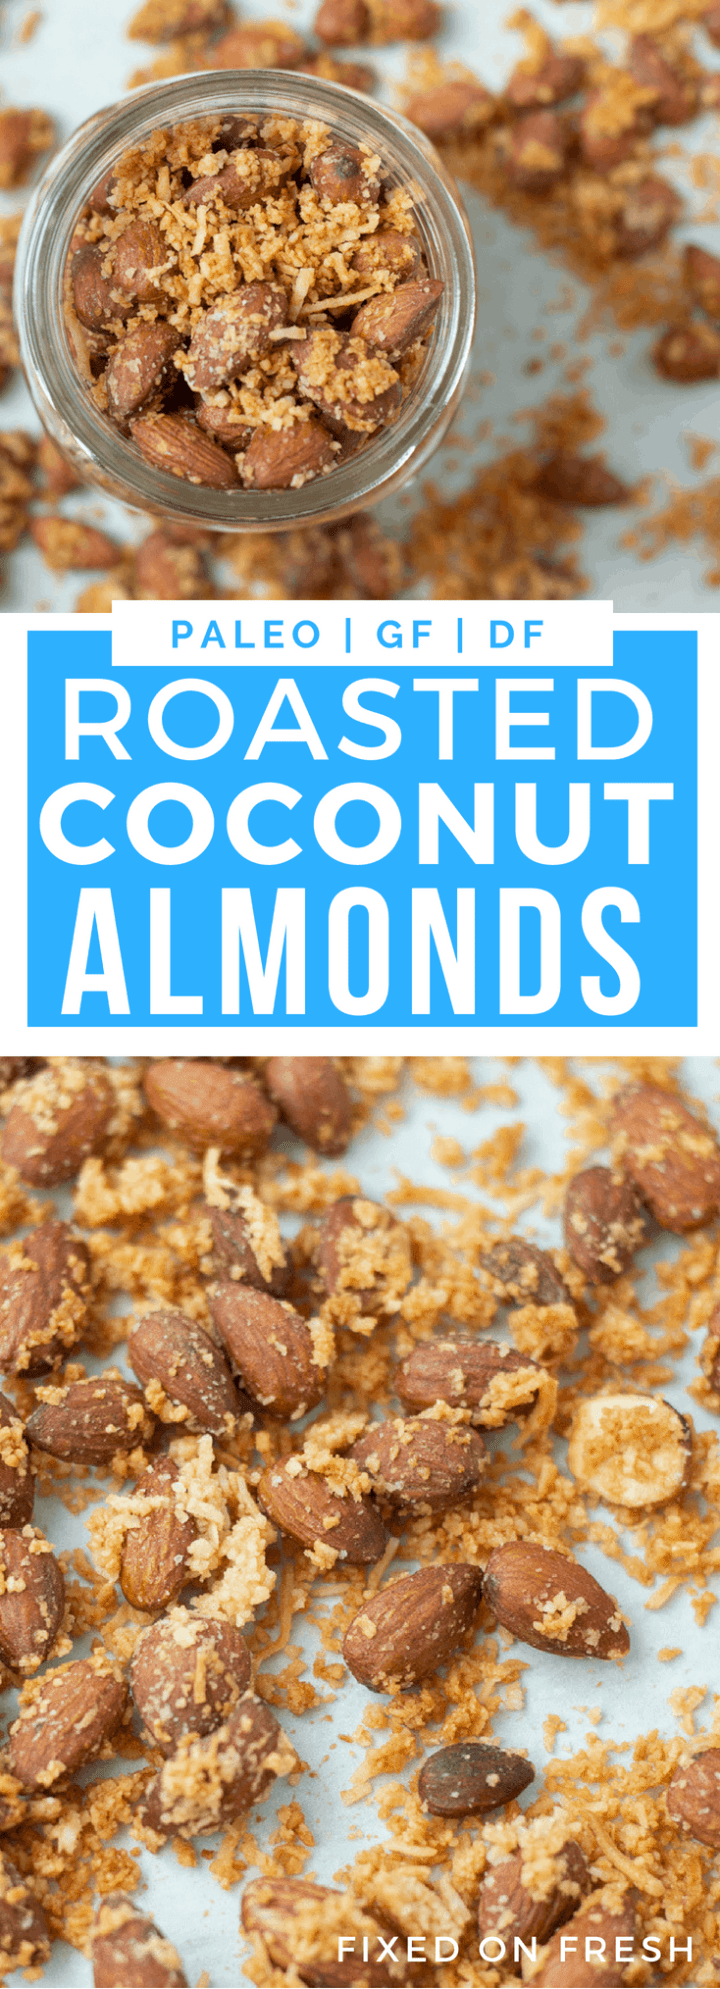 Roasted Coconut Almonds are an easy snack recipe with only 6 ingredients and it's healthy too! There are no refined sugars so it's paleo friendly and gluten and dairy free #paleo #paleosnacks